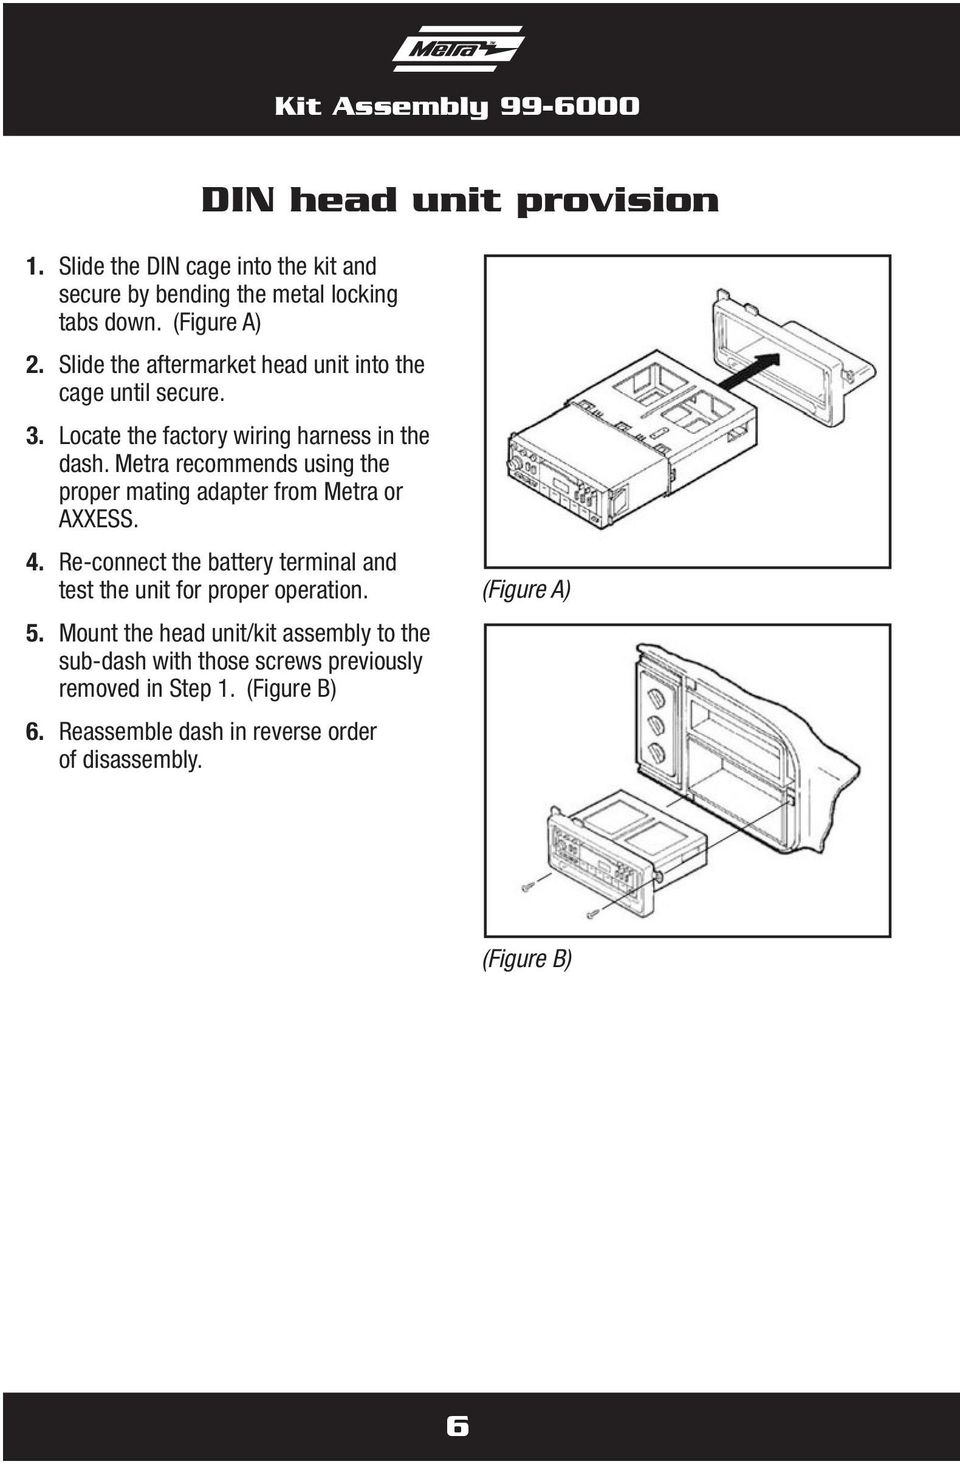 Metra recommends using the proper mating adapter from Metra or AXXESS. 4. Re-connect the battery terminal and test the unit for proper operation.